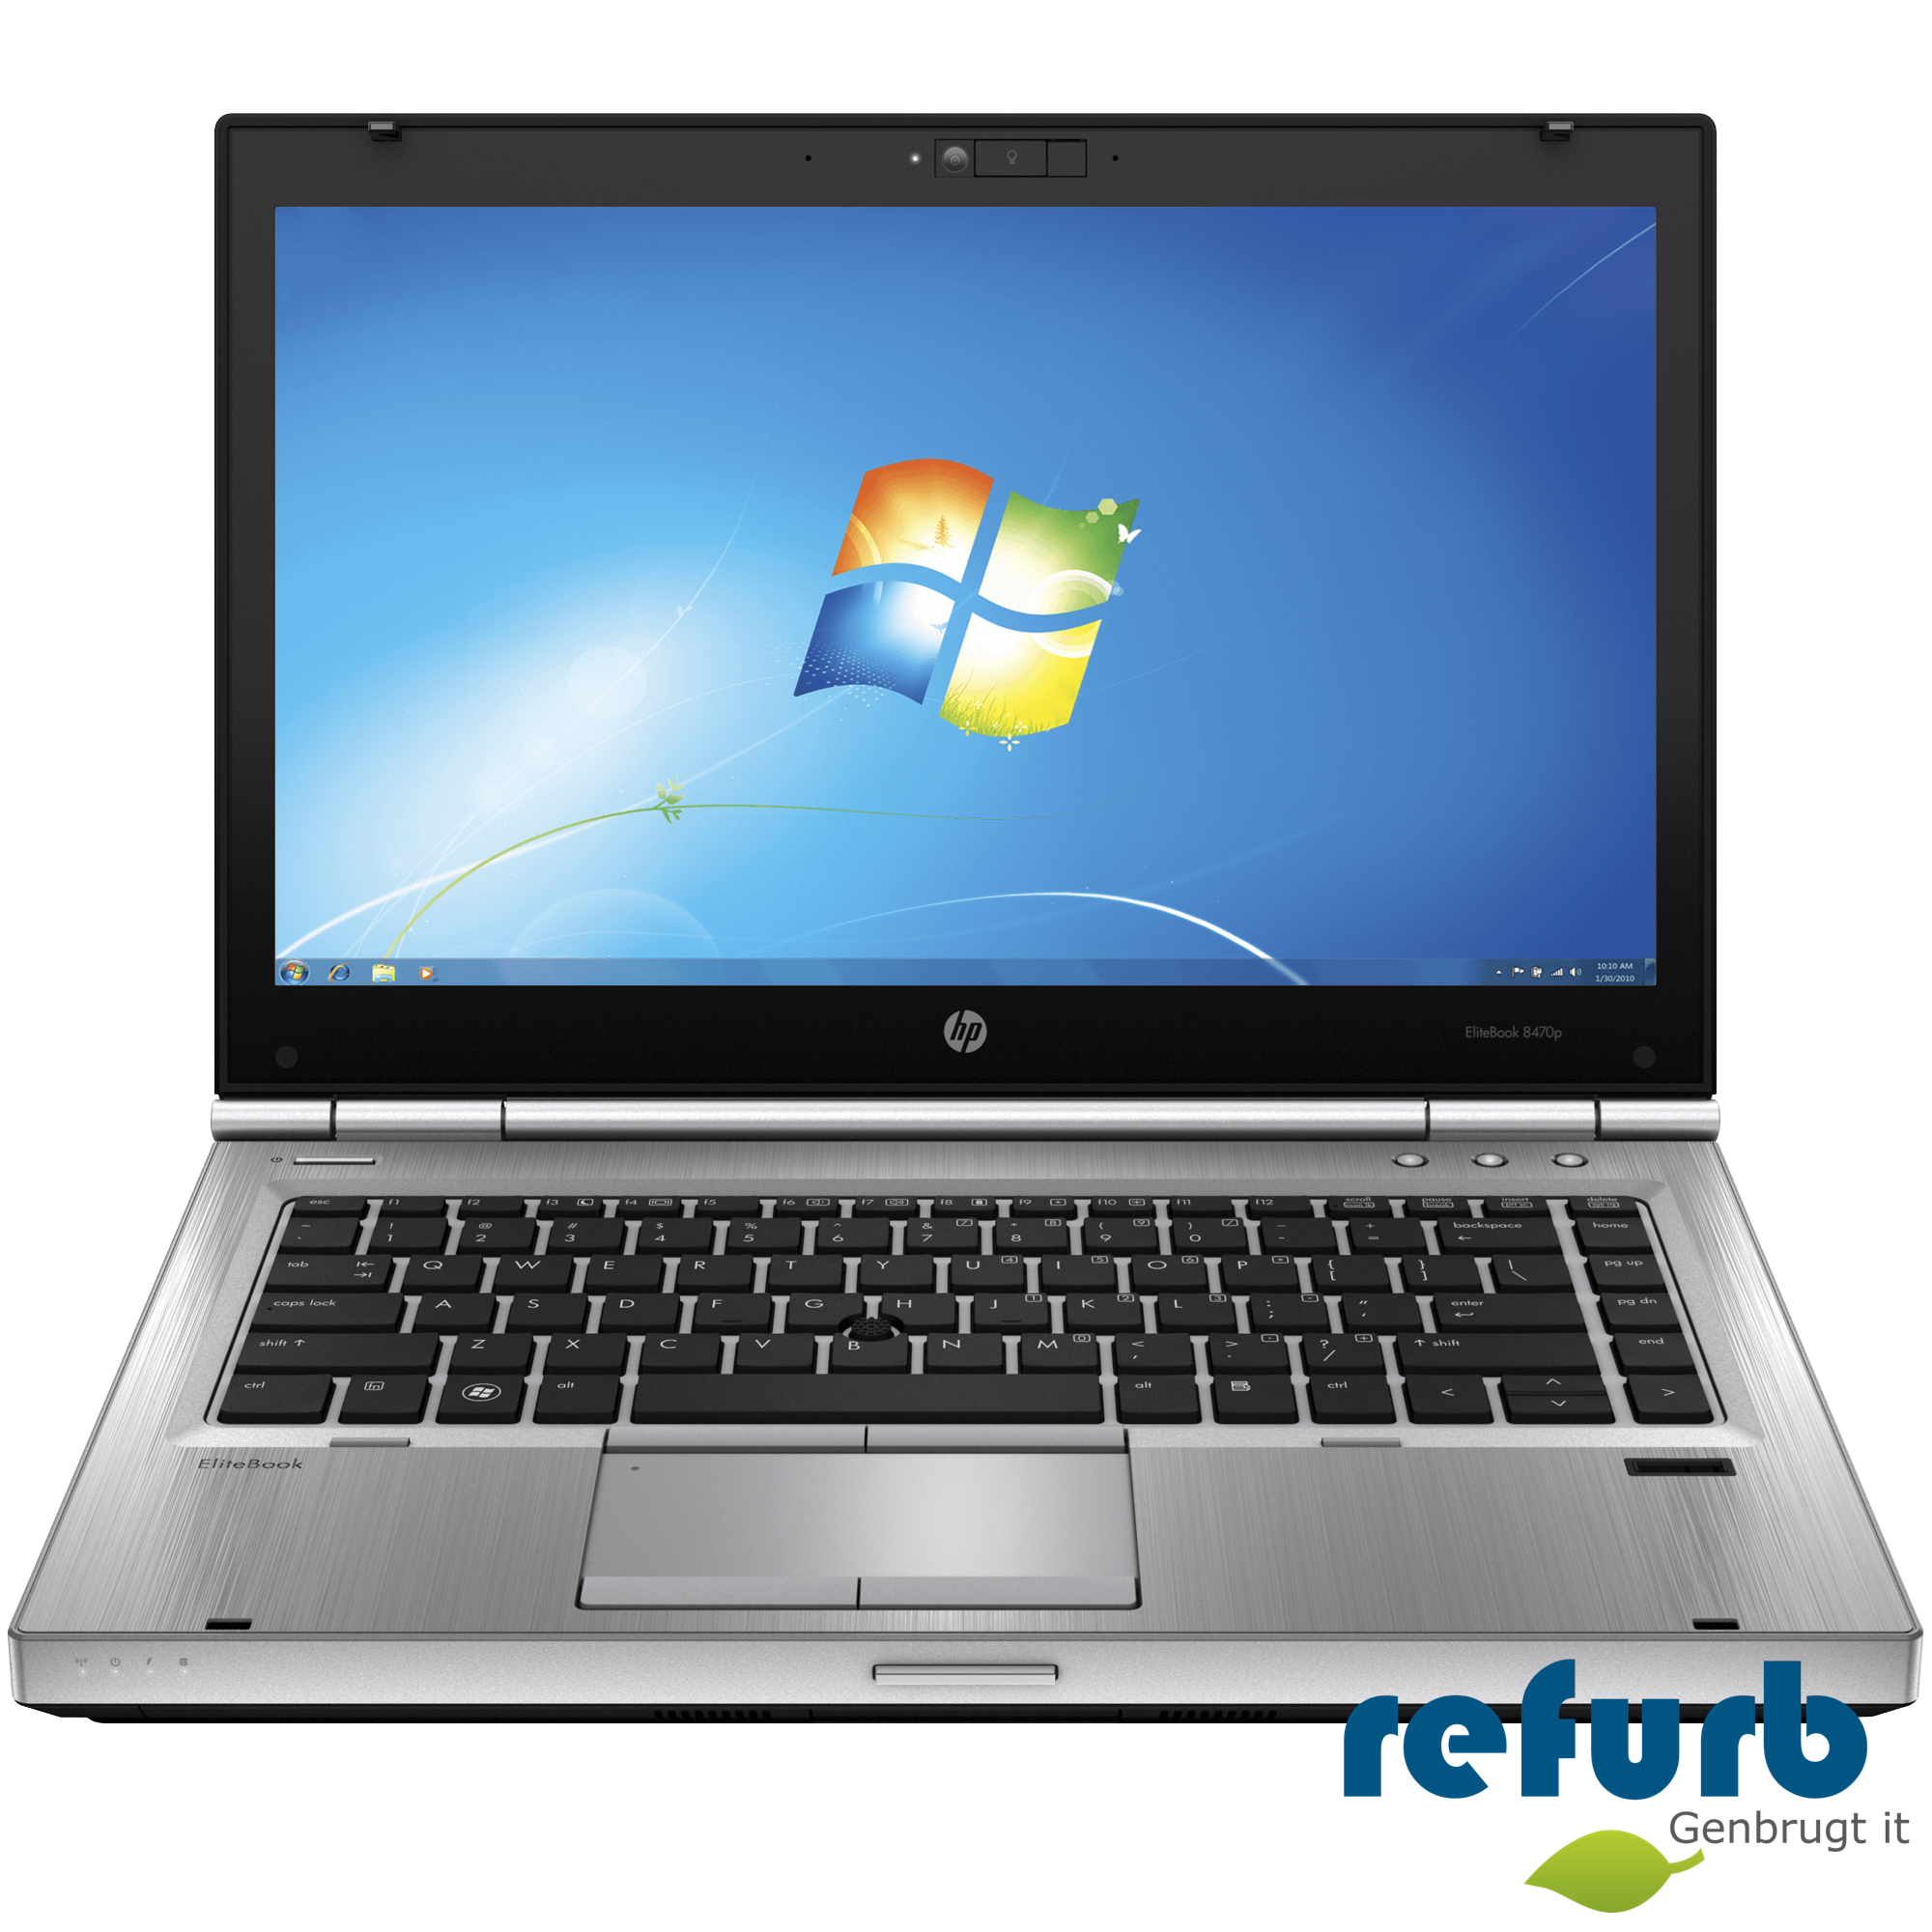 Hp elitebook 8470p fra Hp fra refurb